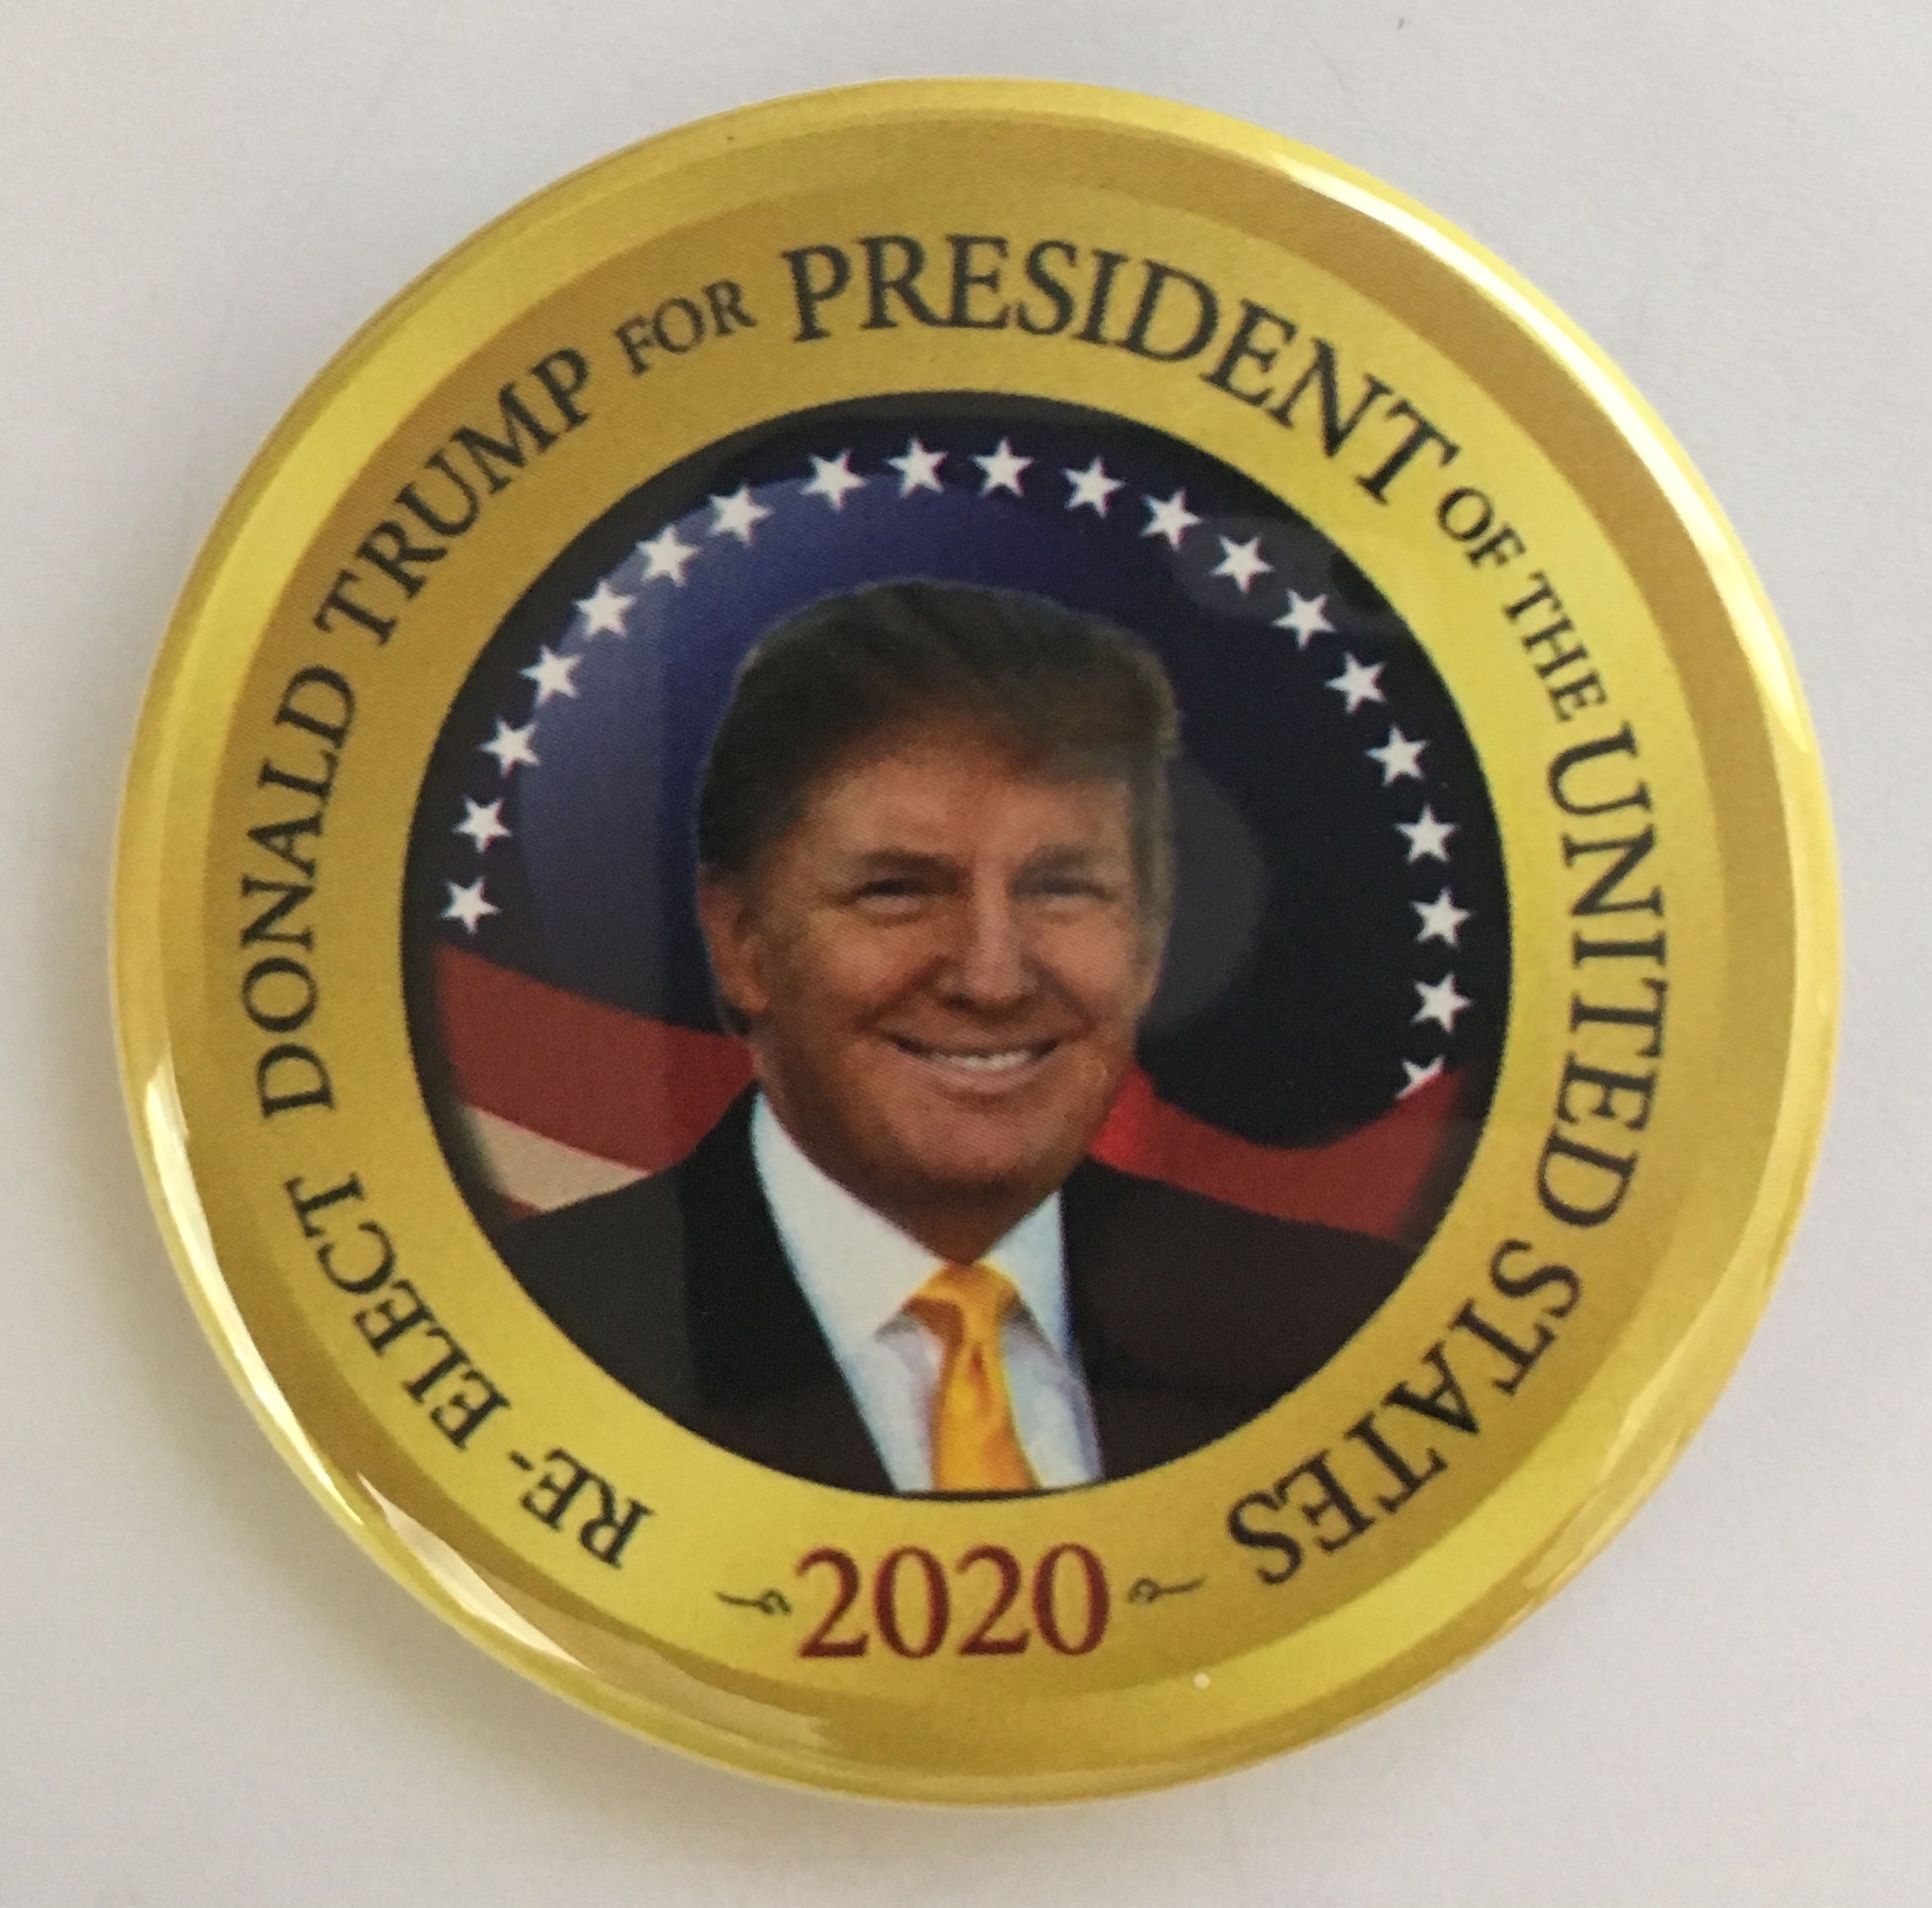 Donald Trump for President 2020 Best Sellers Collectors Set